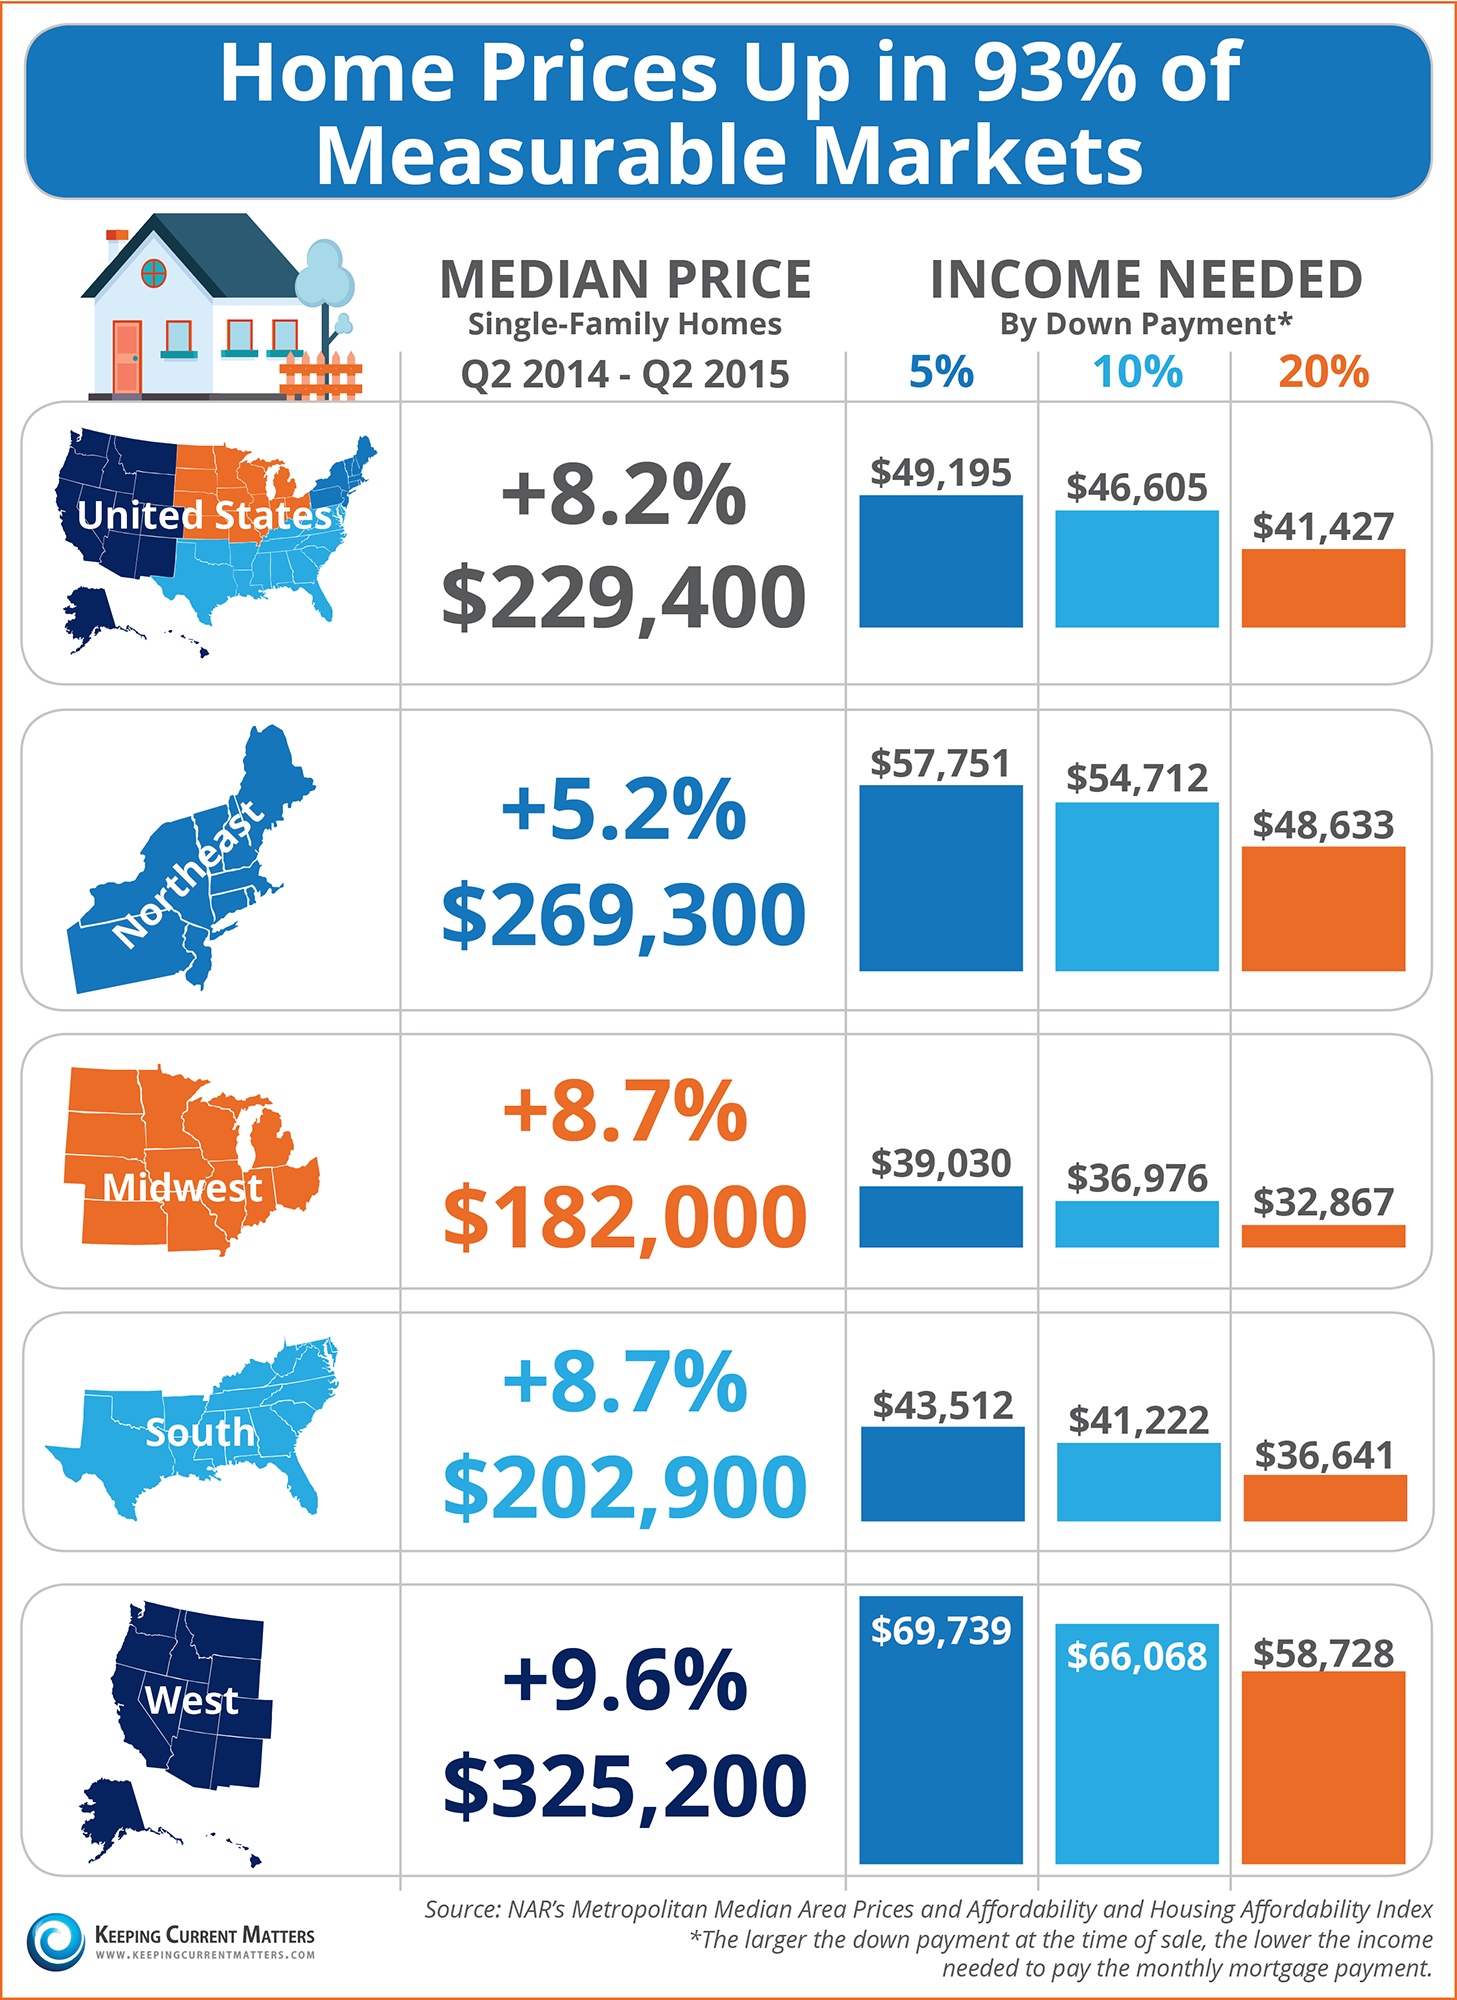 Home Prices Up in 93% of Measurable Markets [INFOGRAPHIC] | Keeping Current Matters